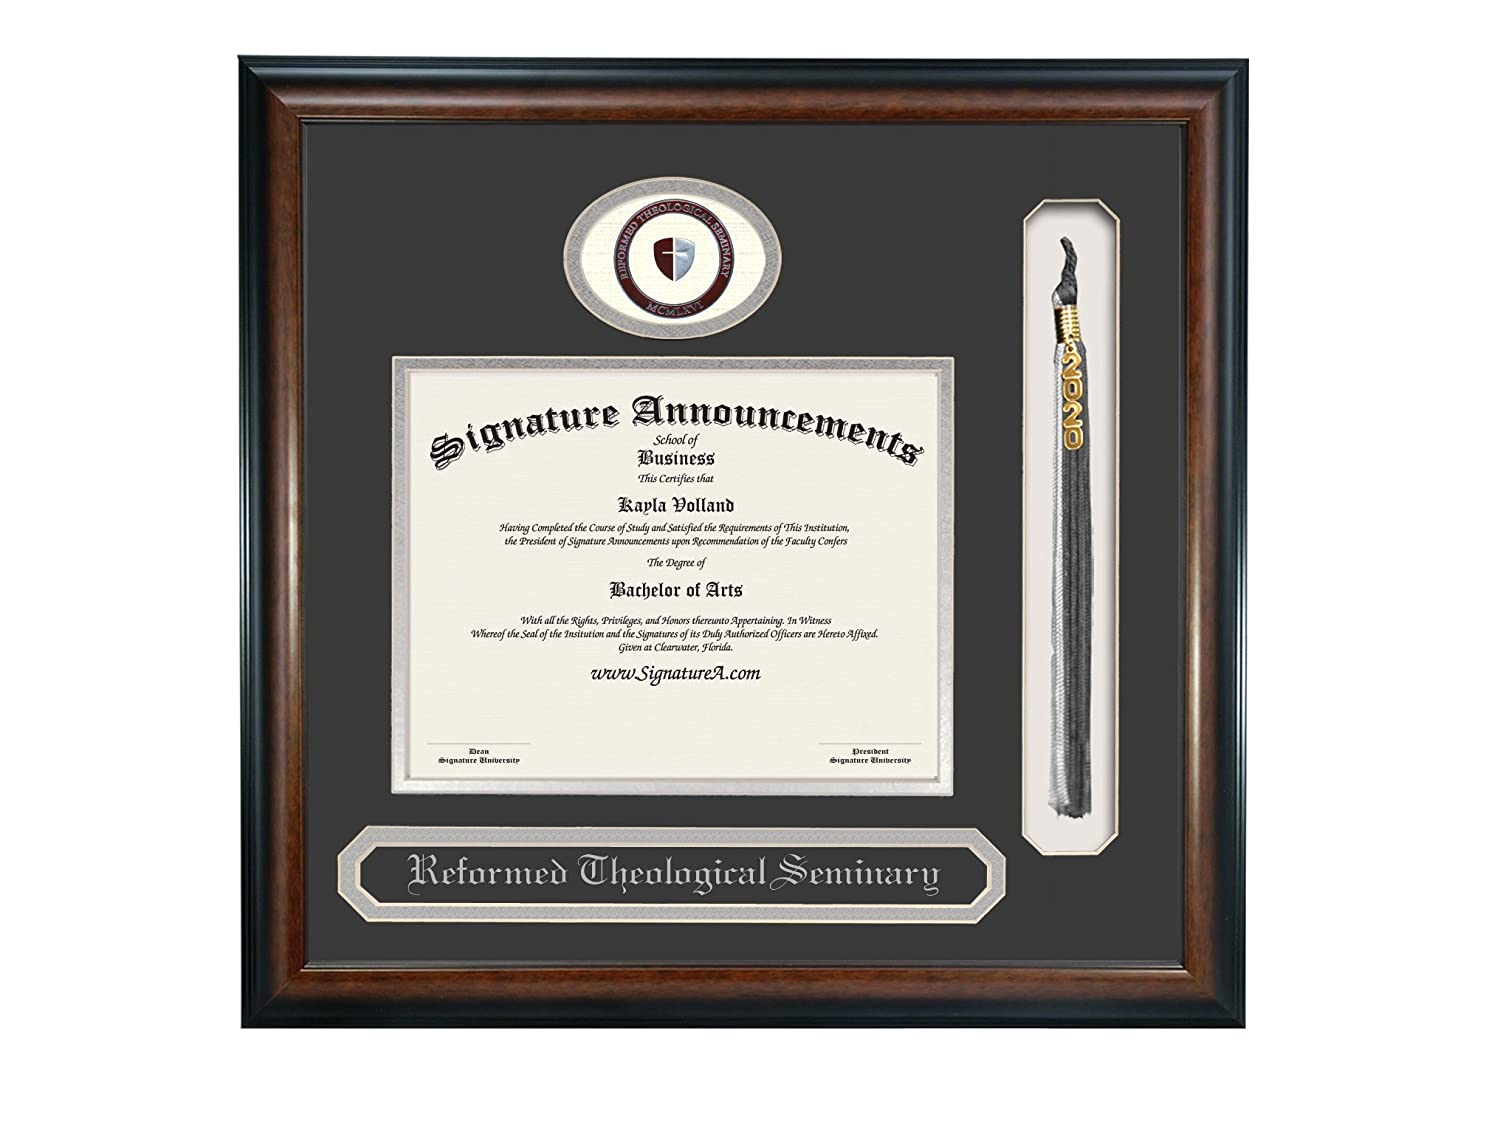 Signature Announcements Reformed Theological Seminary Sculpted Foil Seal Name /& Tassel Graduation Diploma Frame 20 x 20 Matte Mahogany